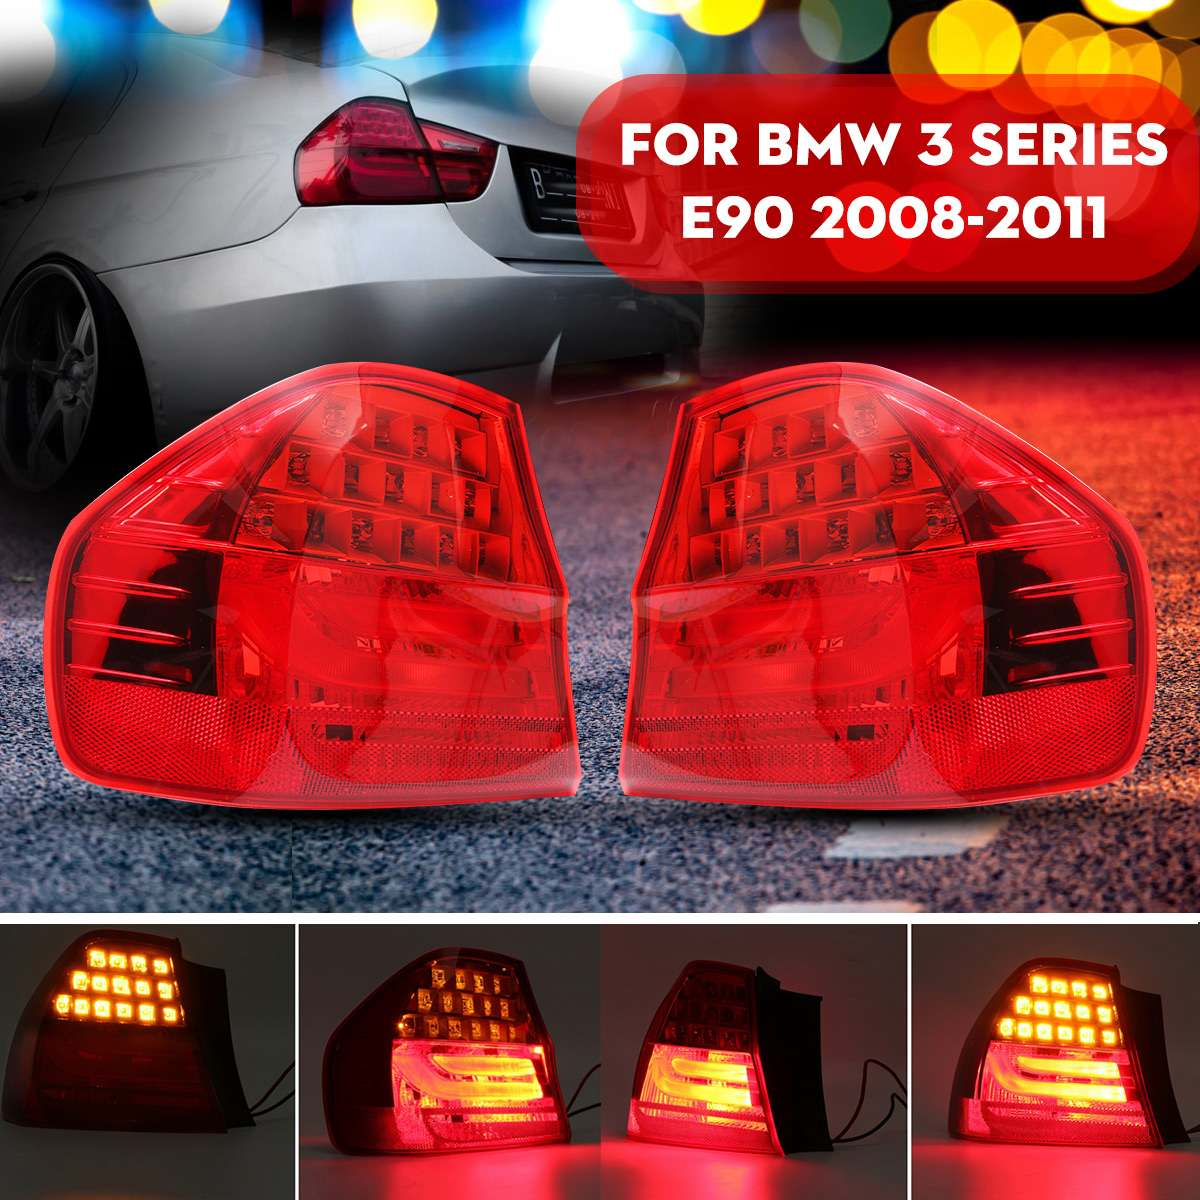 Car Tail Light Rear Lamp Brake Light Signal 63217289425 63217289426 For BMW E90 3 SERIES 2008 2009 2010 2011 image